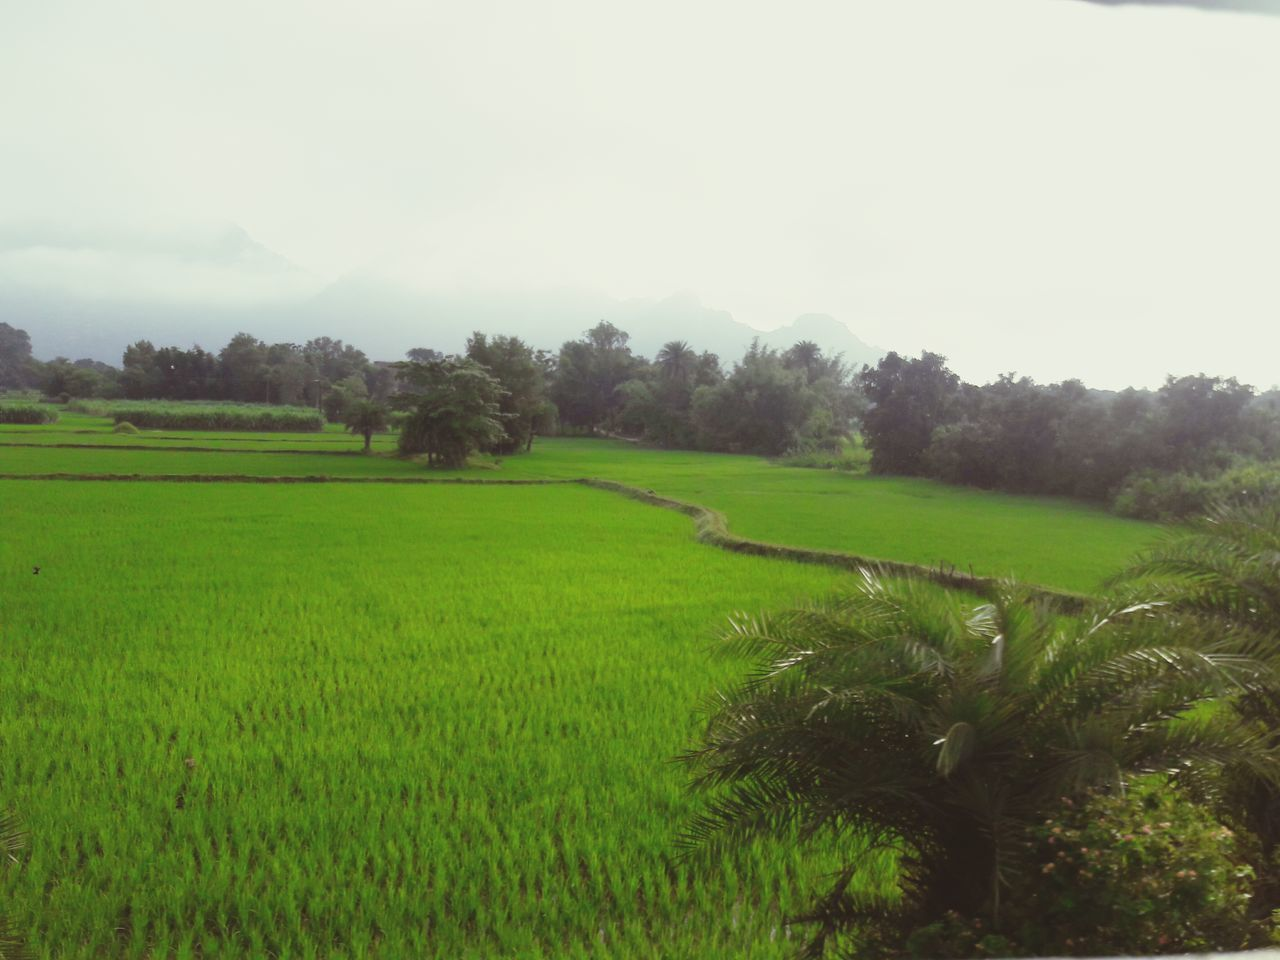 field, agriculture, tranquil scene, nature, tranquility, landscape, beauty in nature, scenics, growth, farm, rural scene, tree, green color, cultivated land, outdoors, day, no people, grass, rice paddy, clear sky, sky